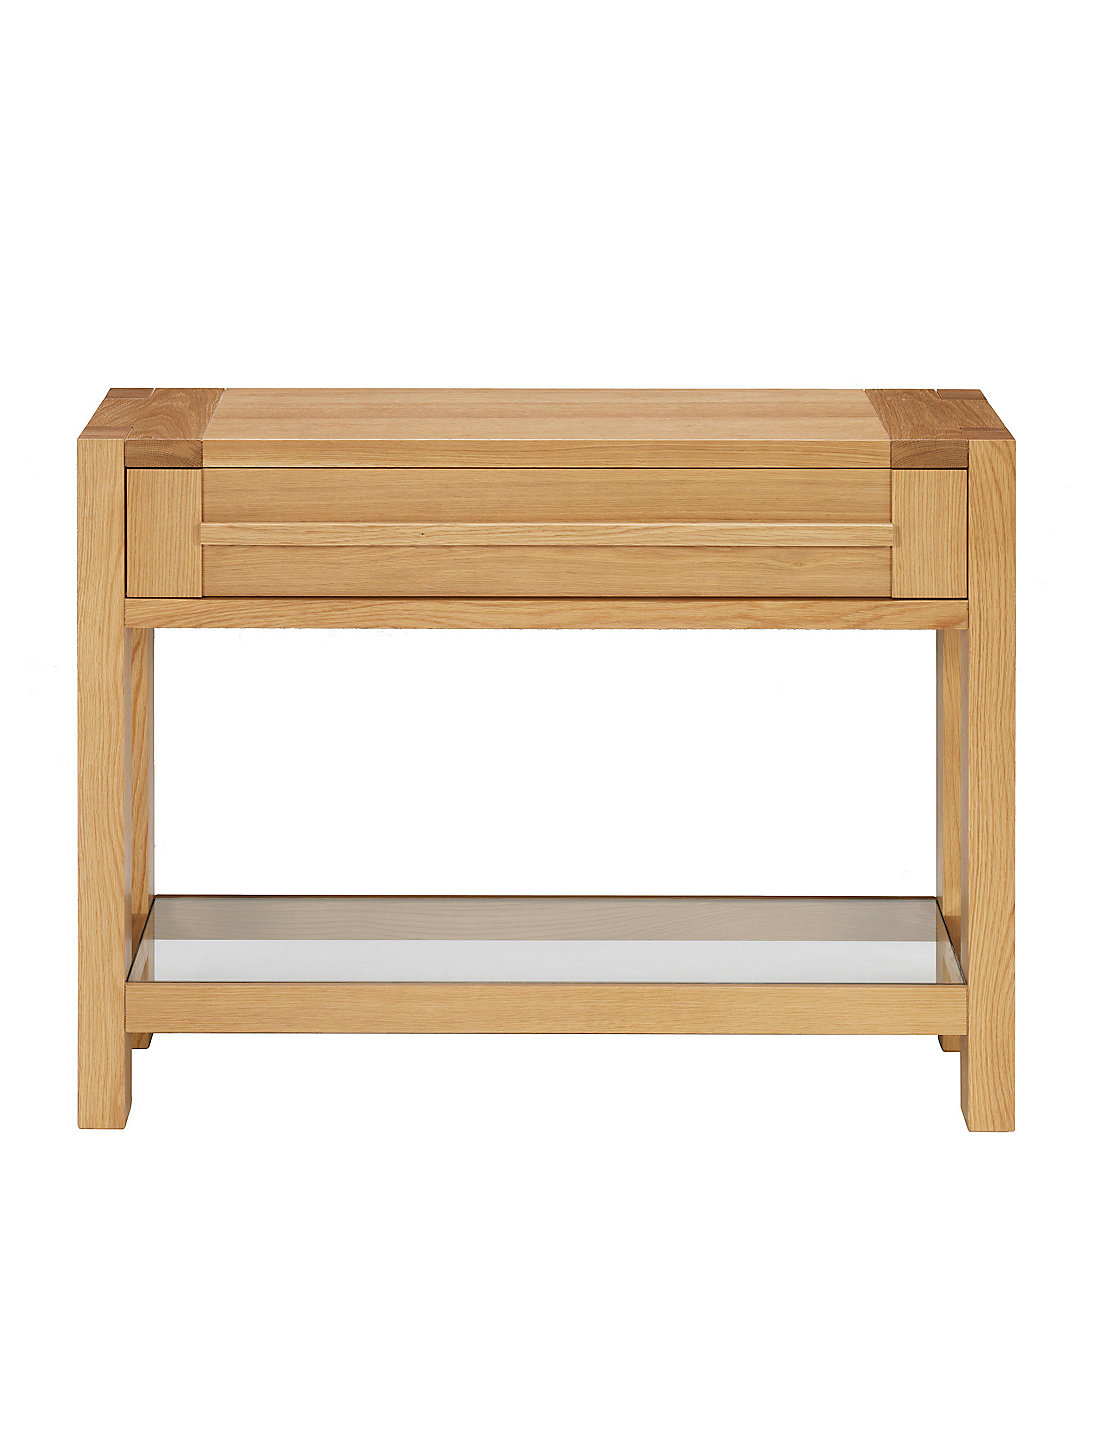 Exceptional Sonoma Light Console Table